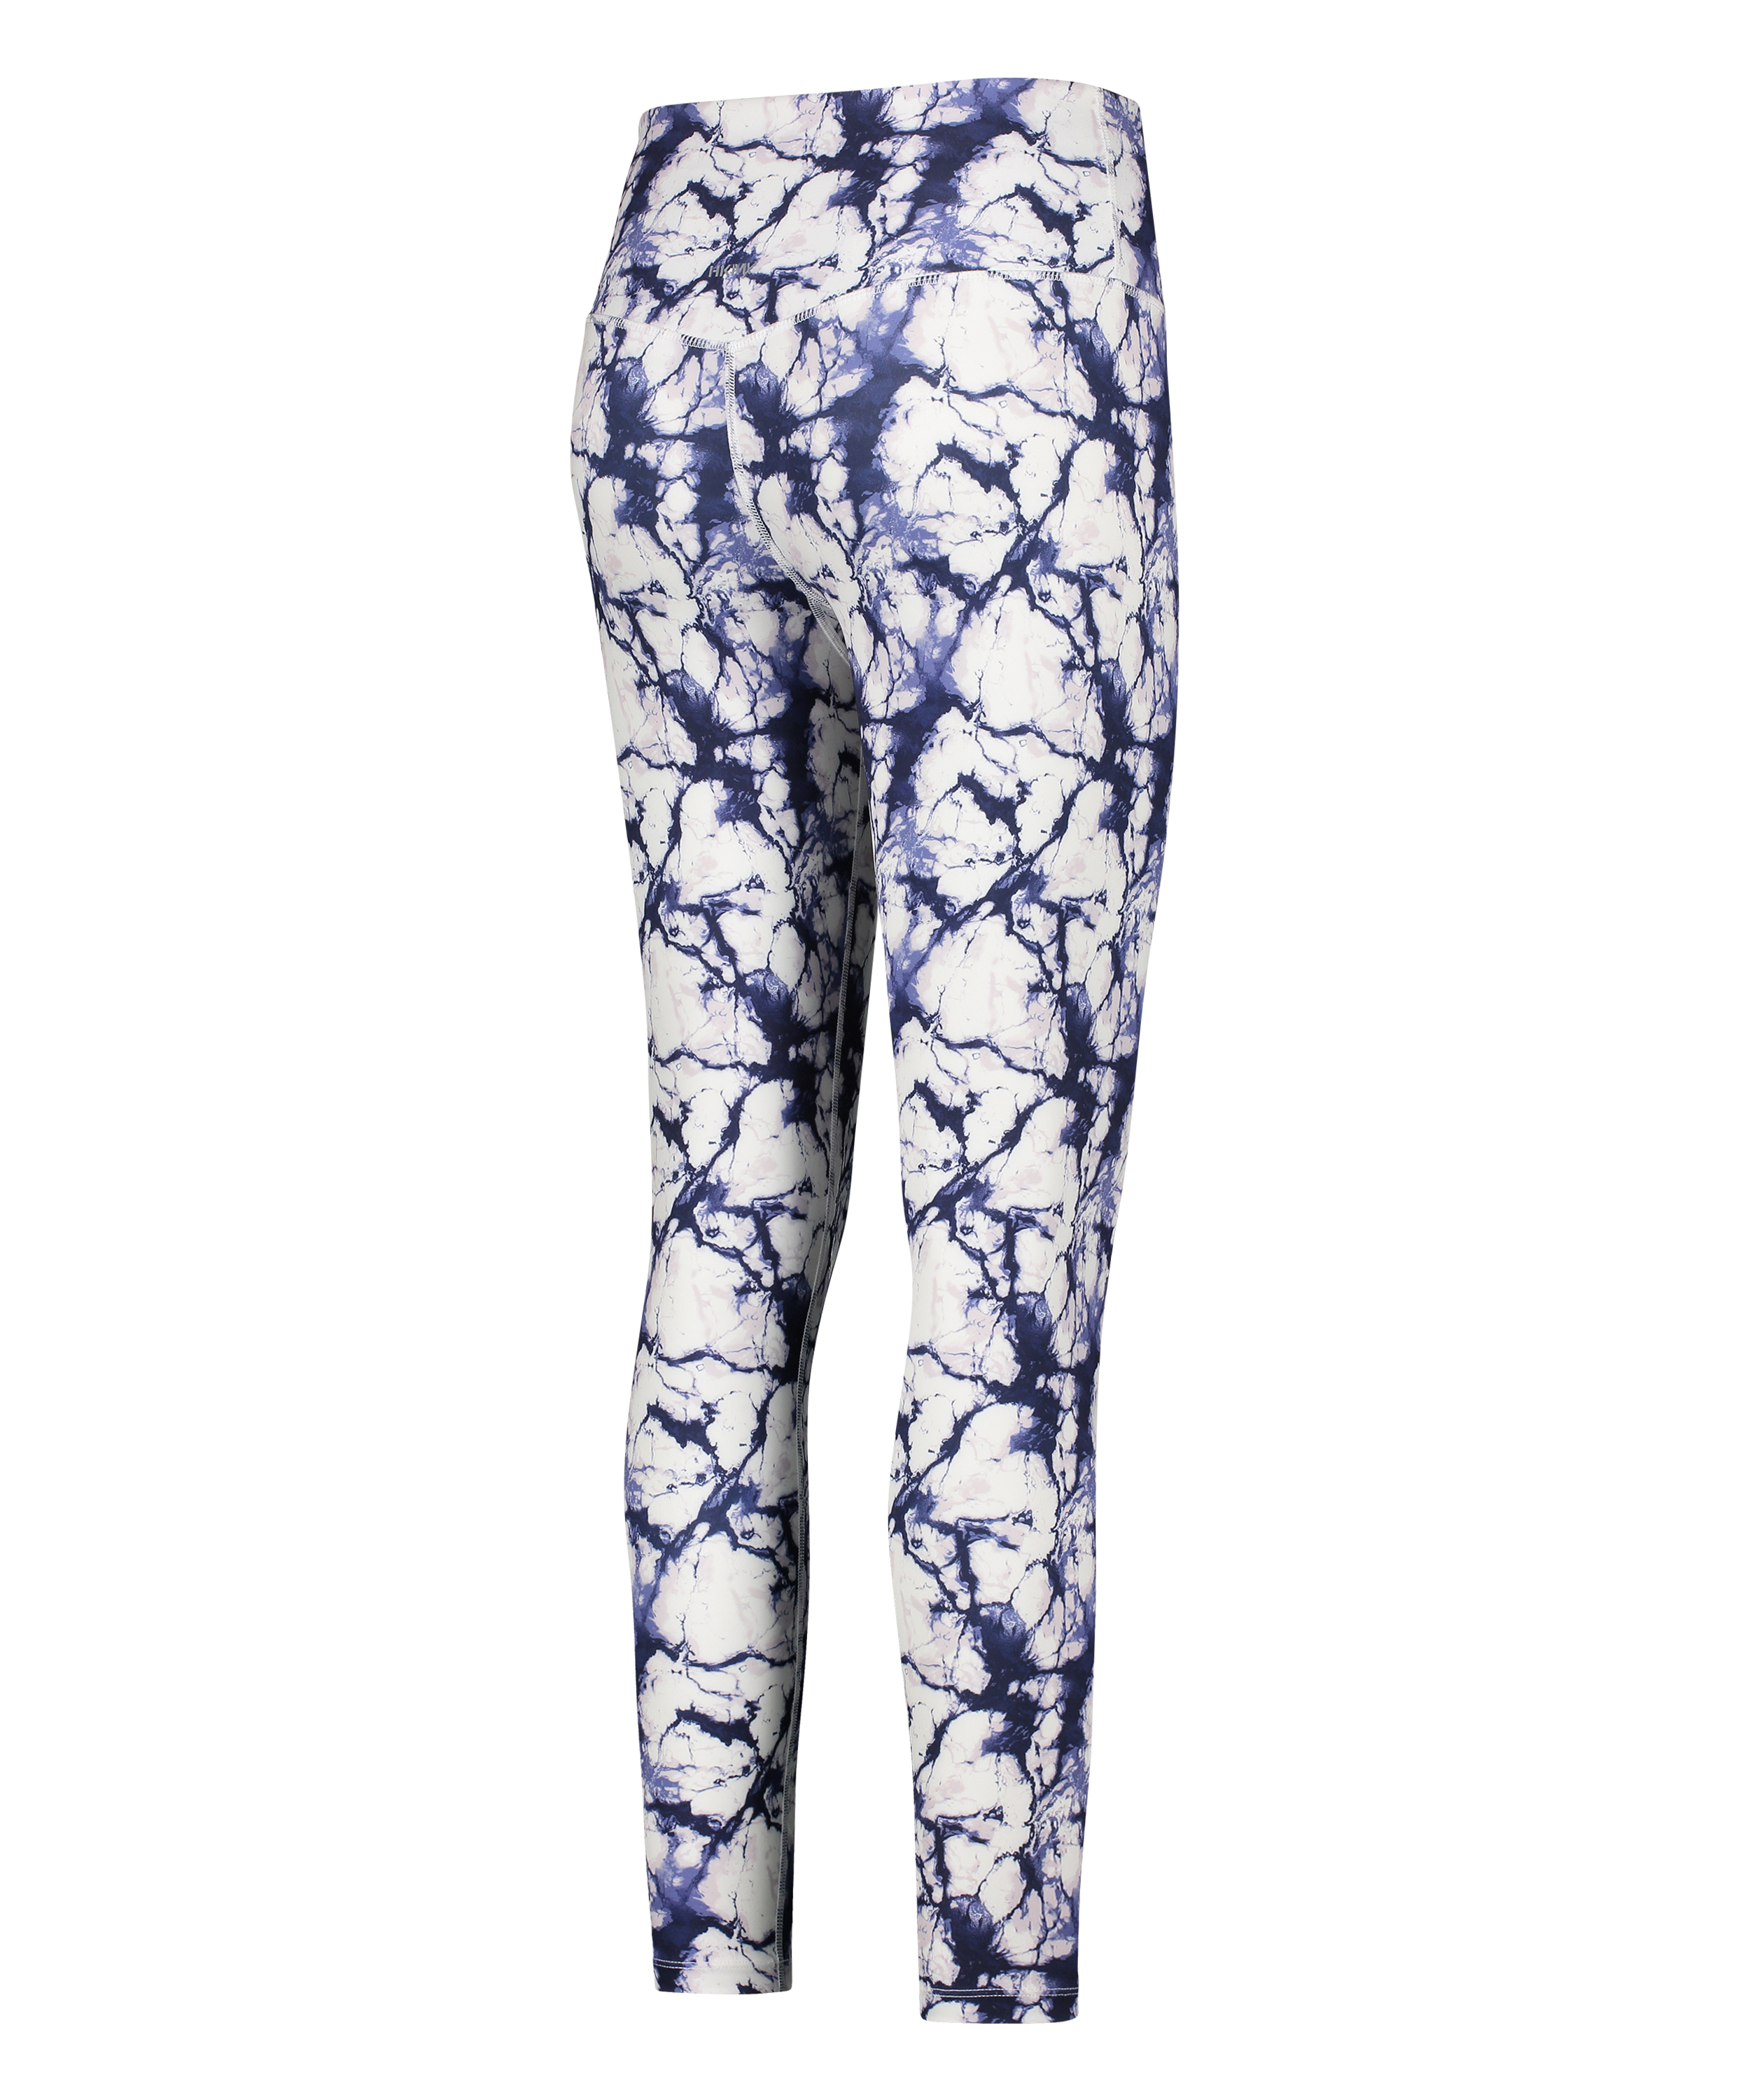 HKMX Oh My Squat High Waisted Legging, Wit, main